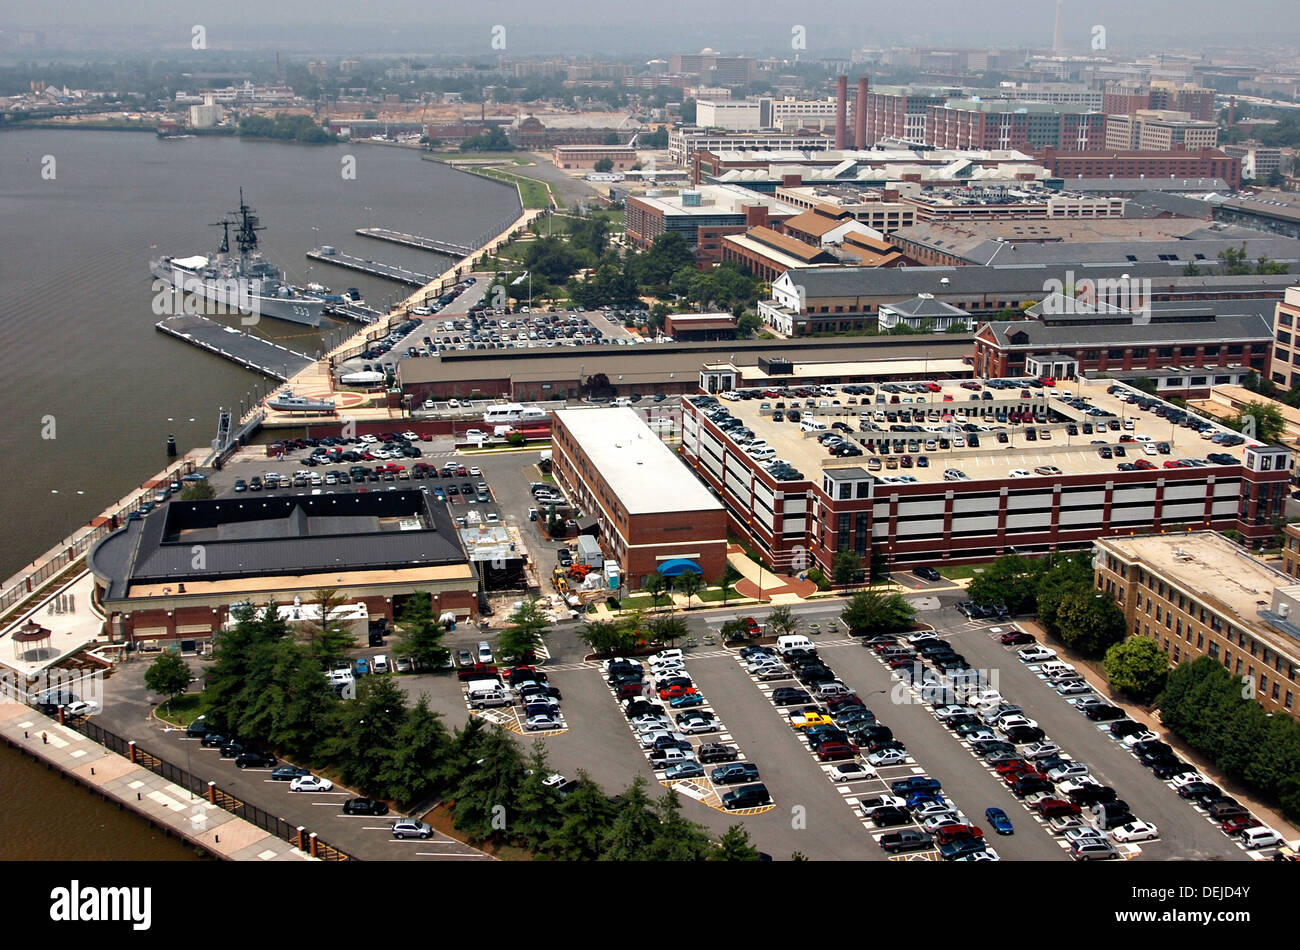 Aerial view of the Navy Yard July 12, 2006 in Washington, DC. Stock Photo